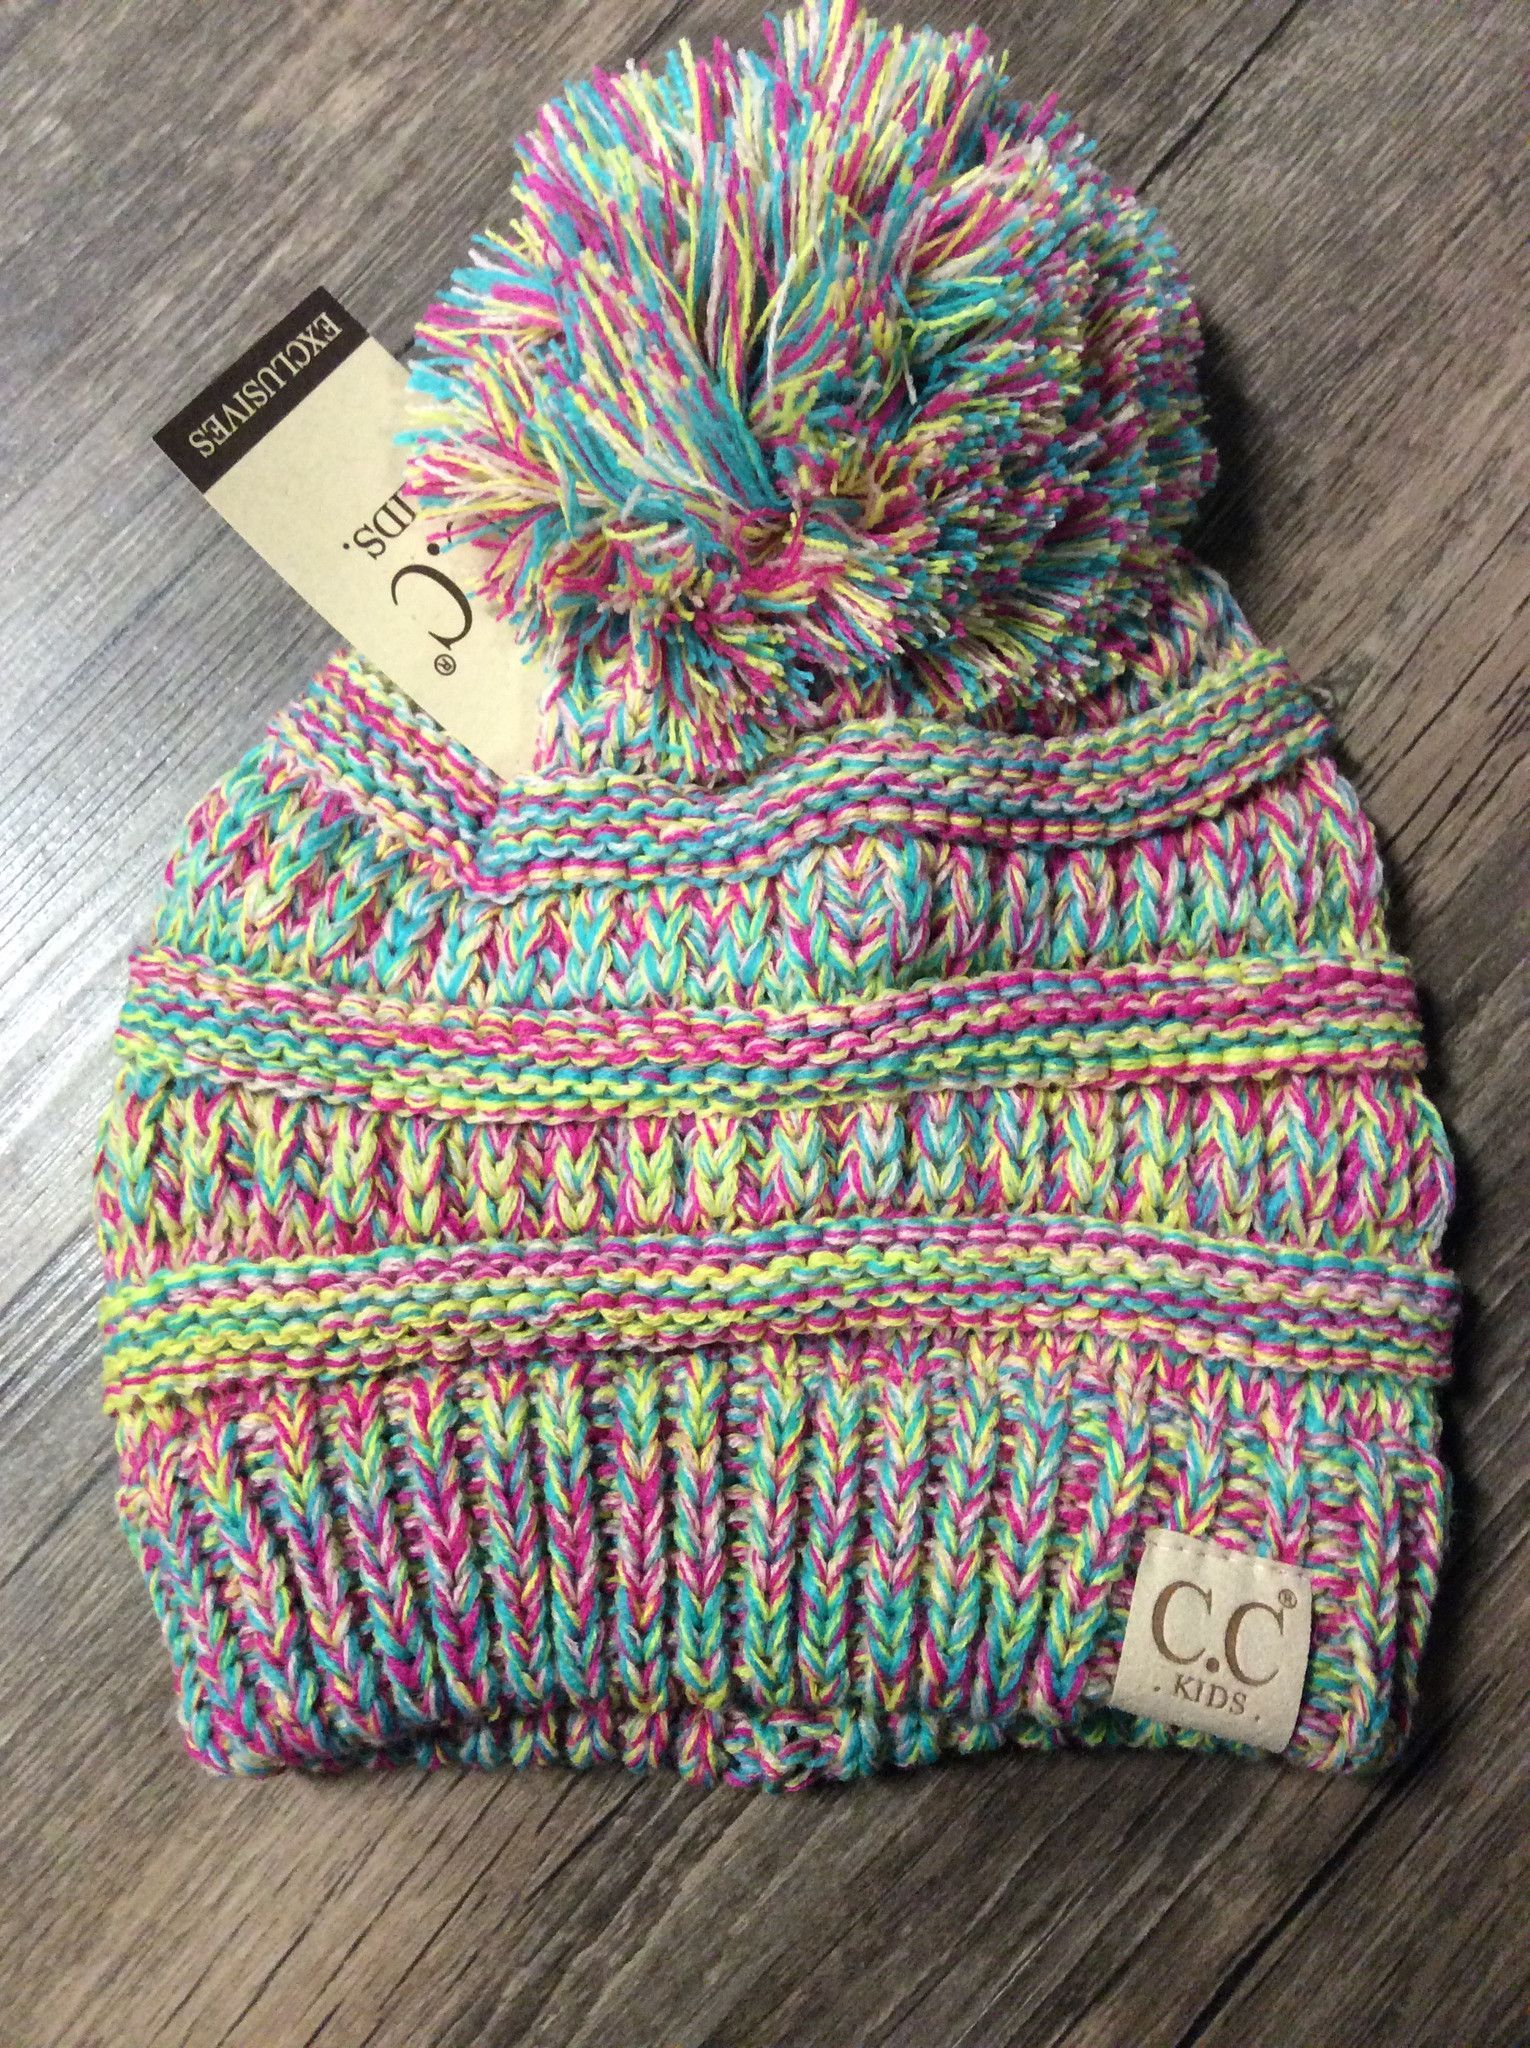 32f6571b8dc The kids version of our classic CC Beanie. Now they can be just like you!